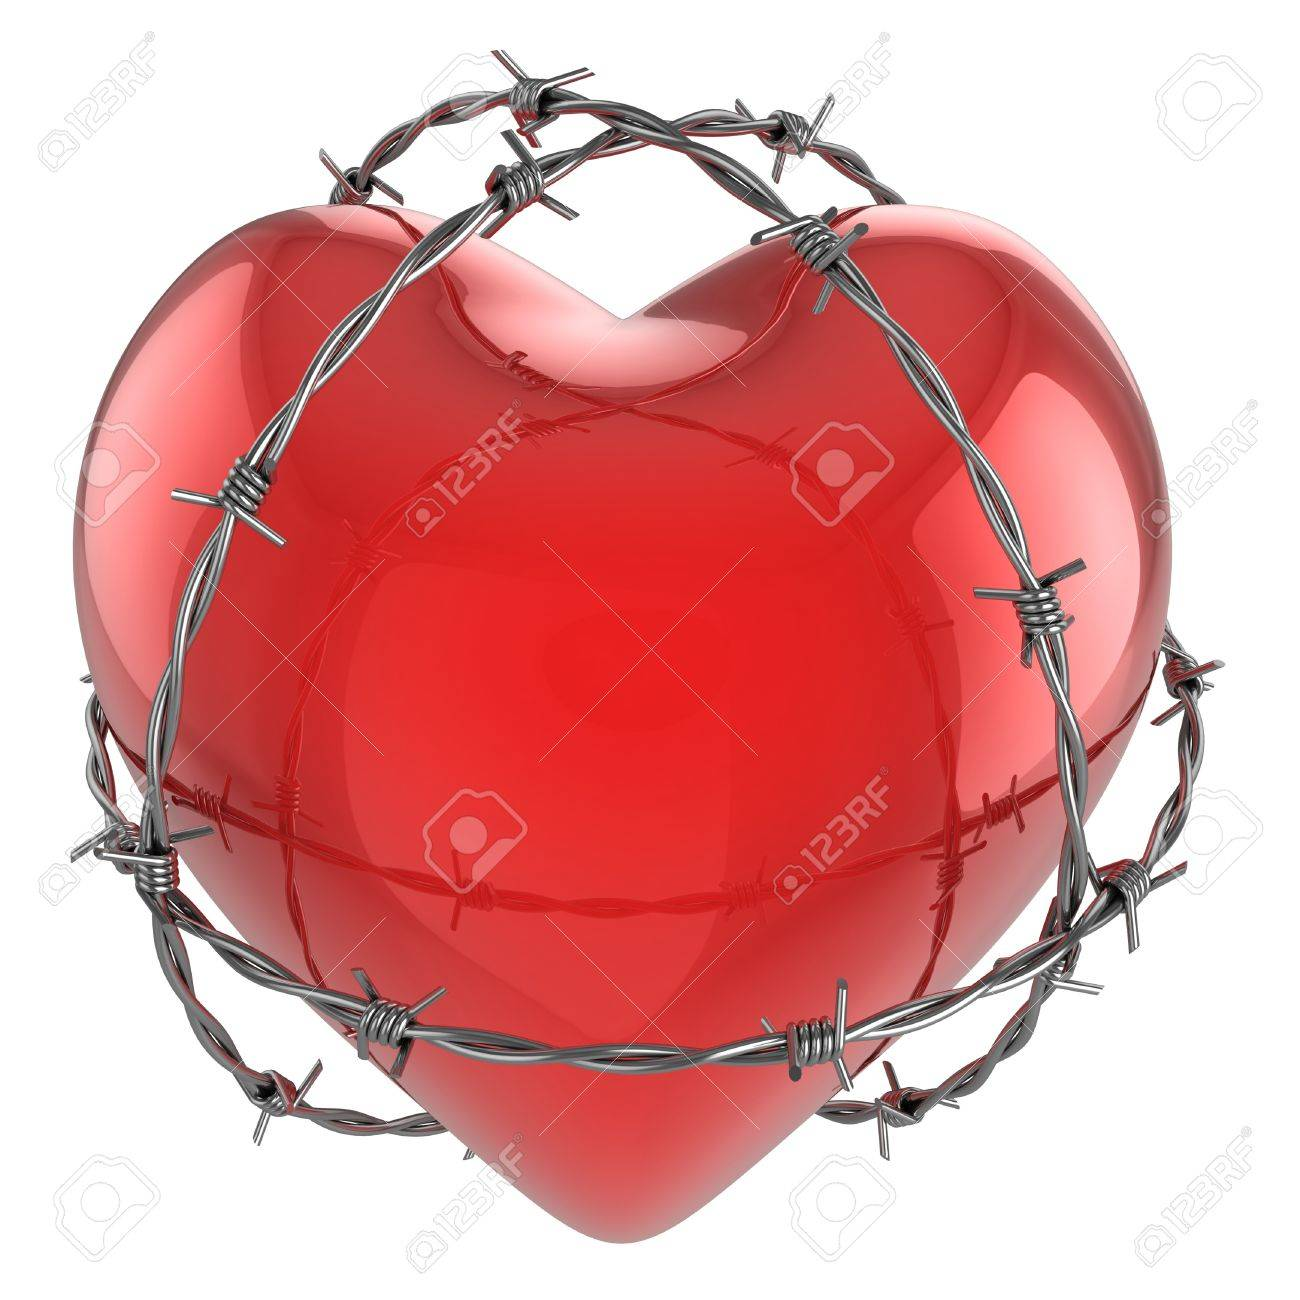 Barbed Wire Surrounded Heart Center Obvod1 Public Circuit Online Simulator Docircuits Red Glossy By 3d Illustration Stock Rh 123rf Com Drawings Wrapped In